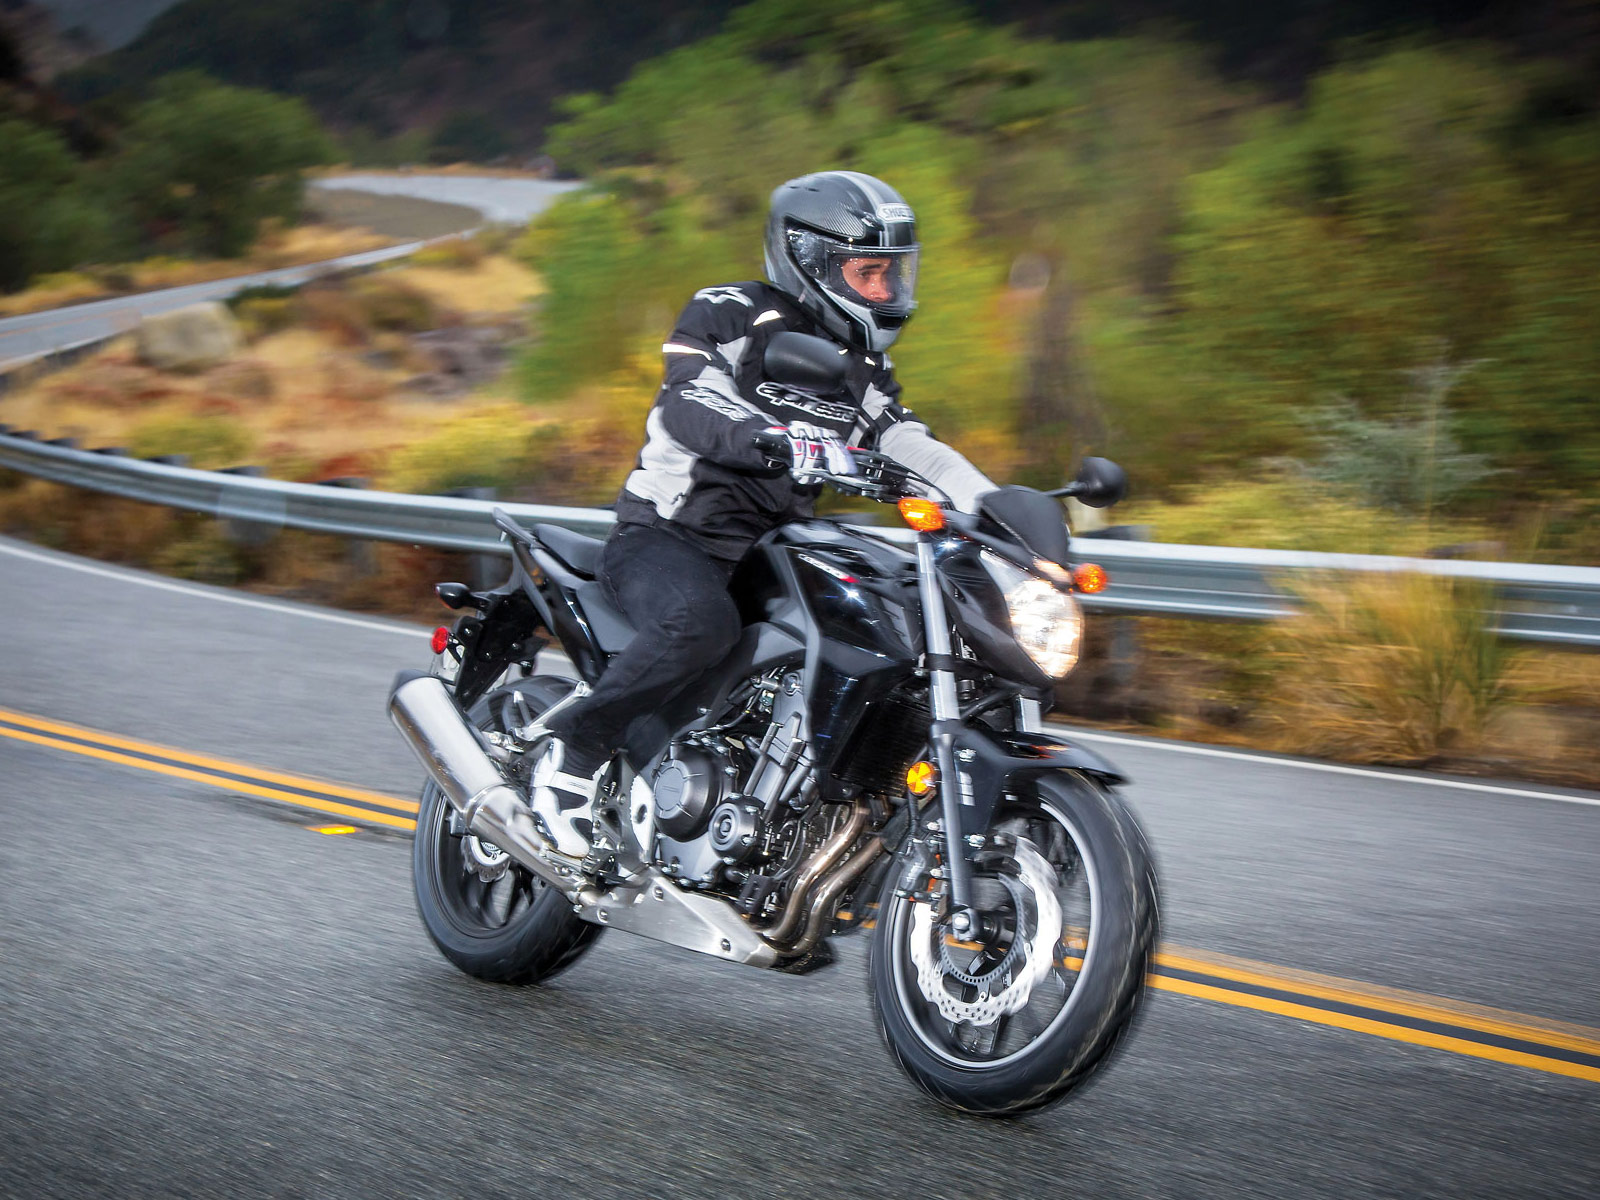 CB500F ABS | 2013 Honda Motorcycle photos and specifications |